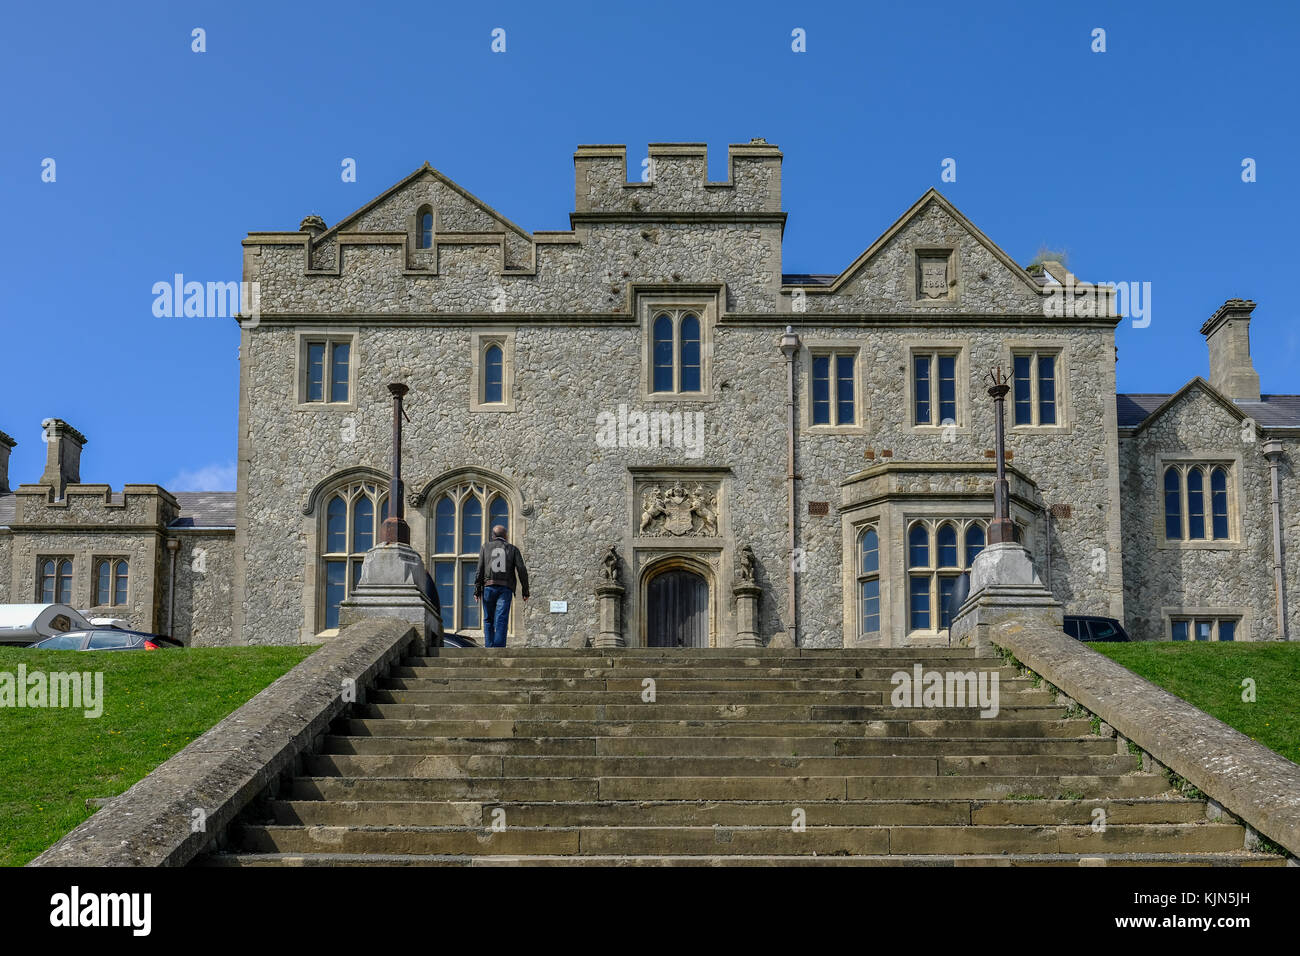 Dover Castle, Dover, Kent, UK - August 17, 2017: Officer's New Barracks with steps infront.  Landscape shot of stone Stock Photo